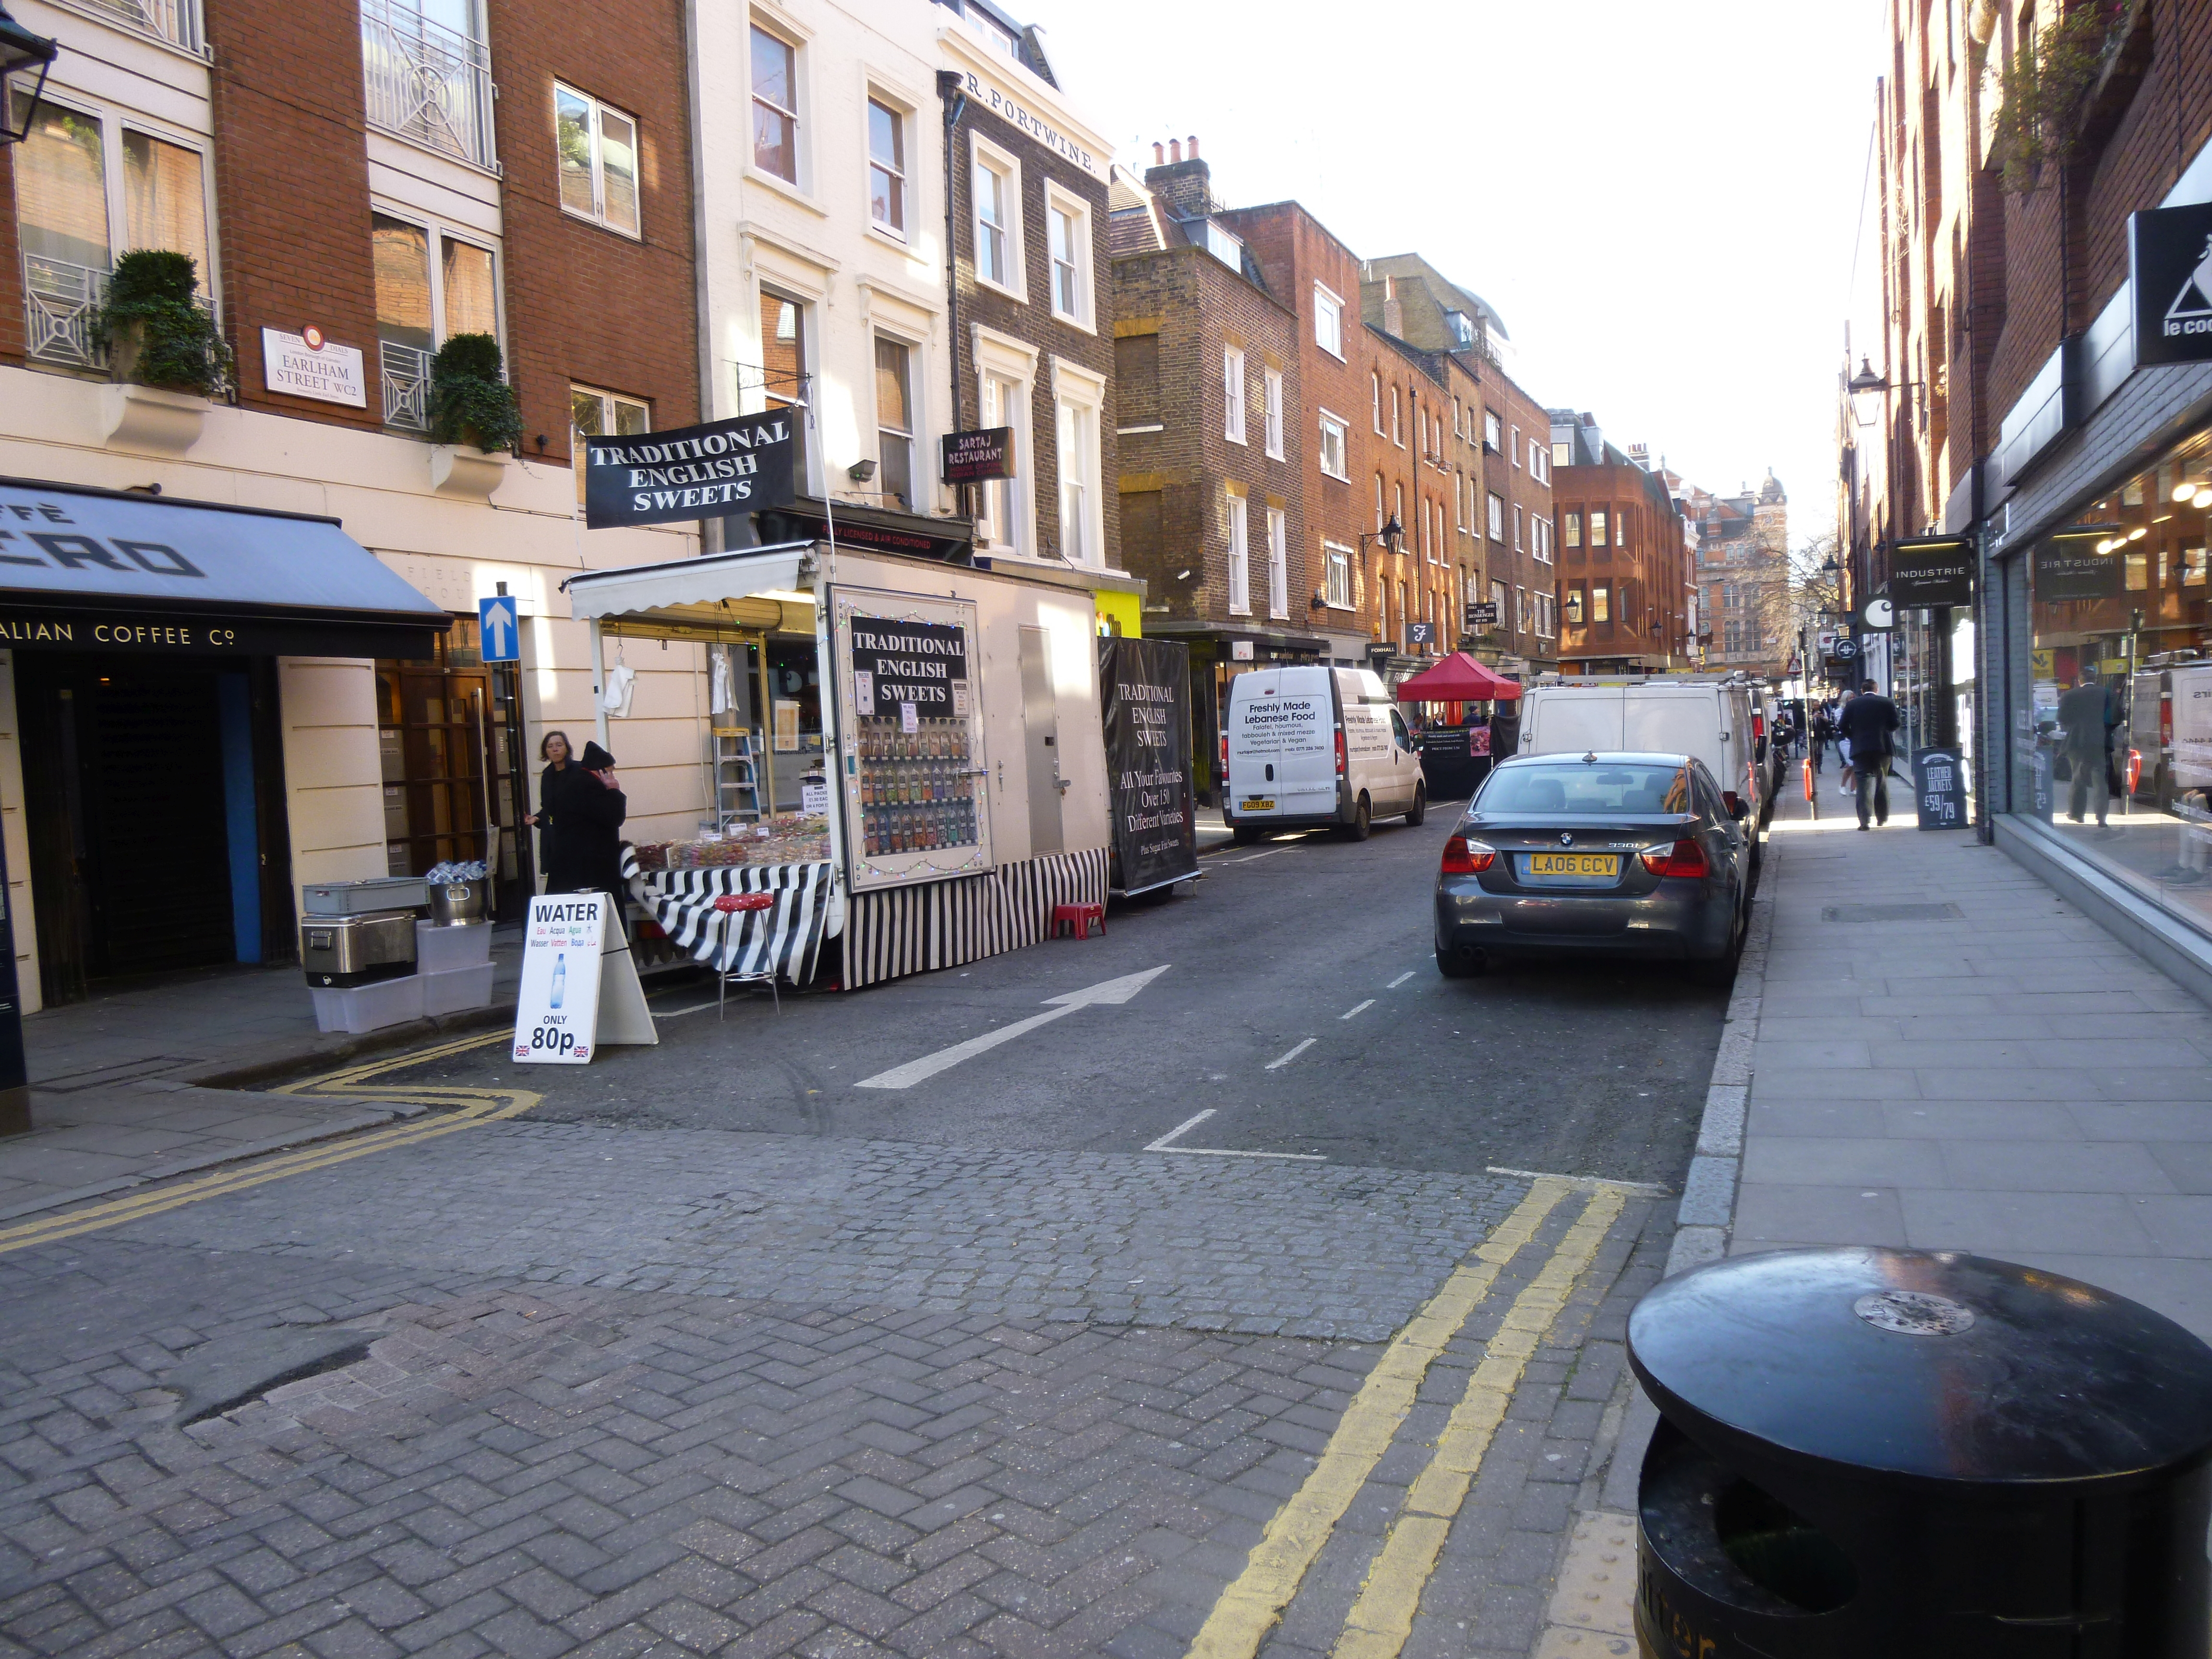 Earlham Street West before the works